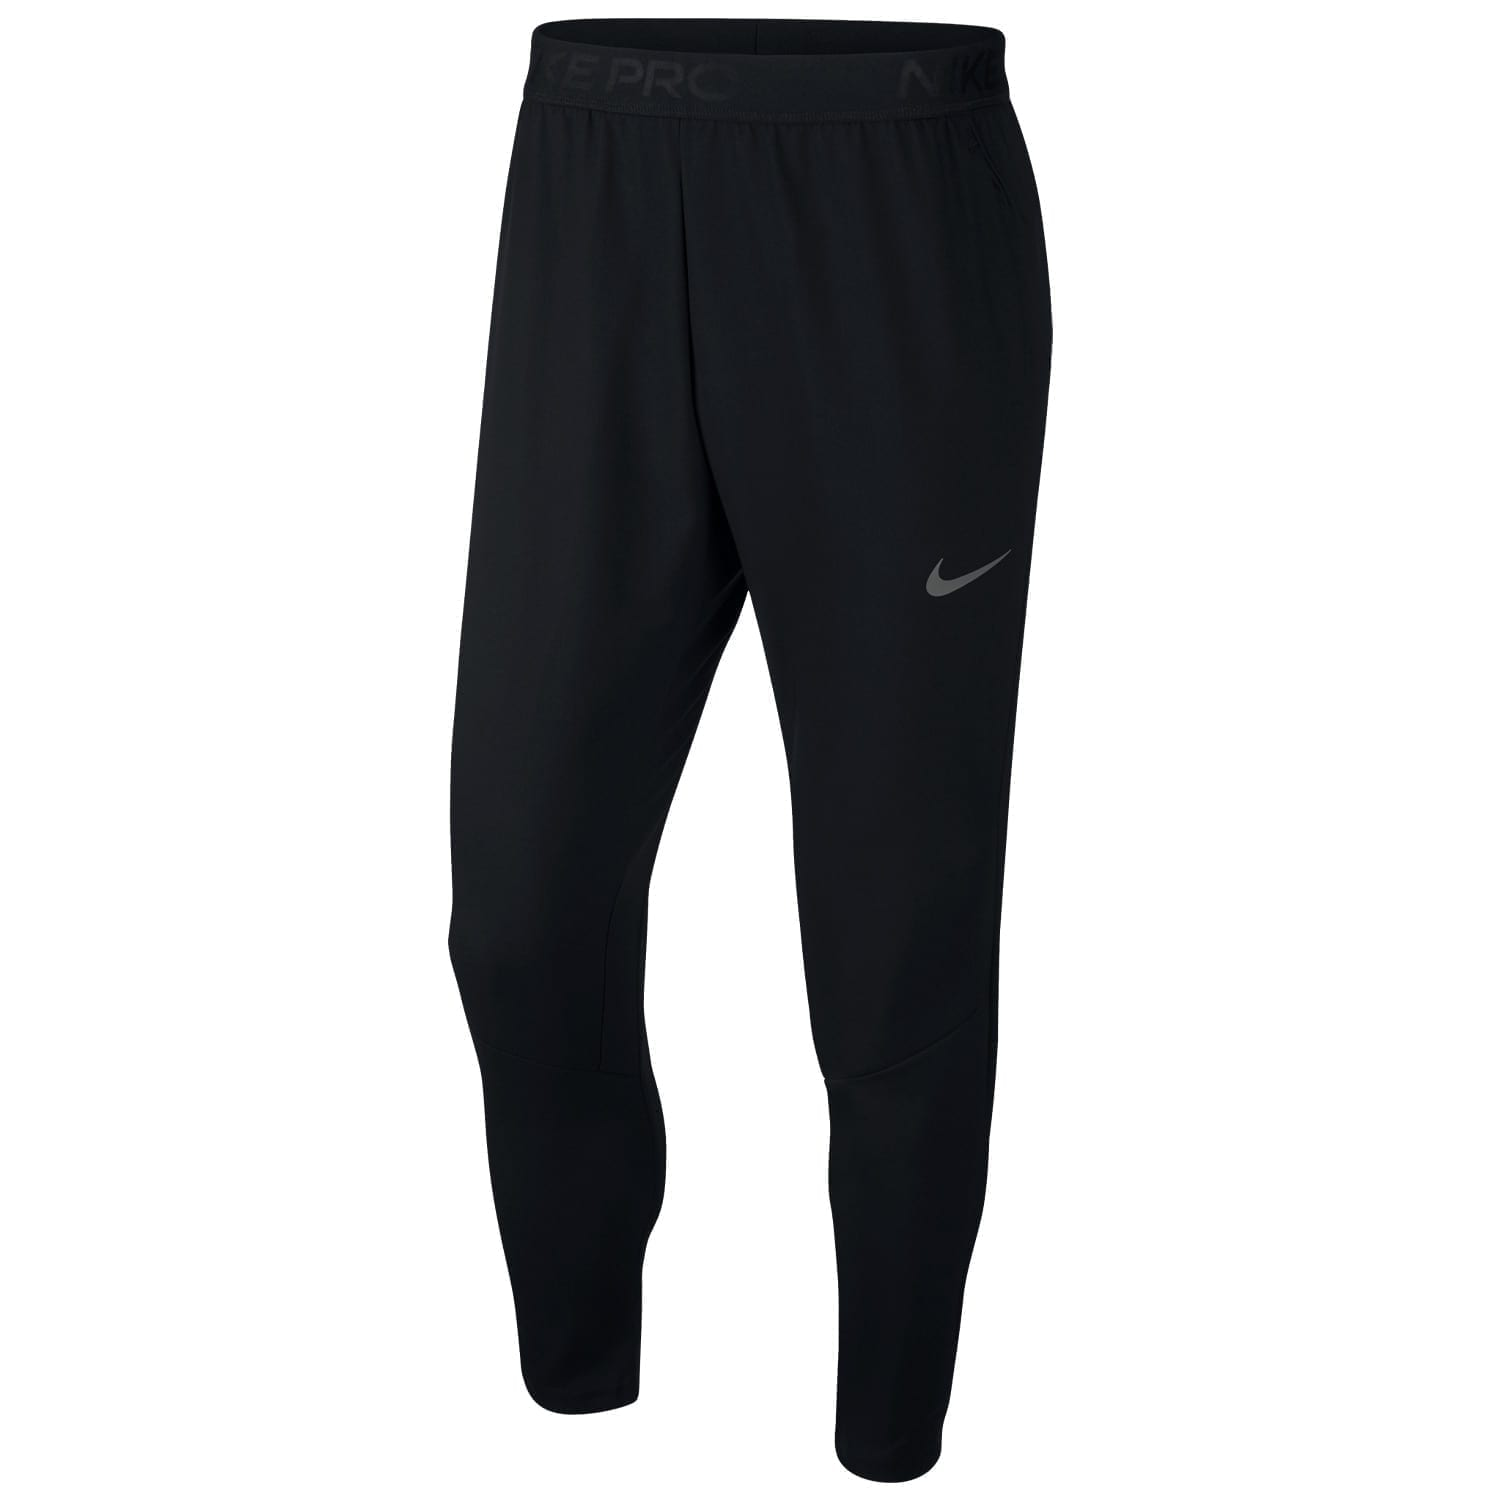 NIKE FLEXHerren-Trainingshose